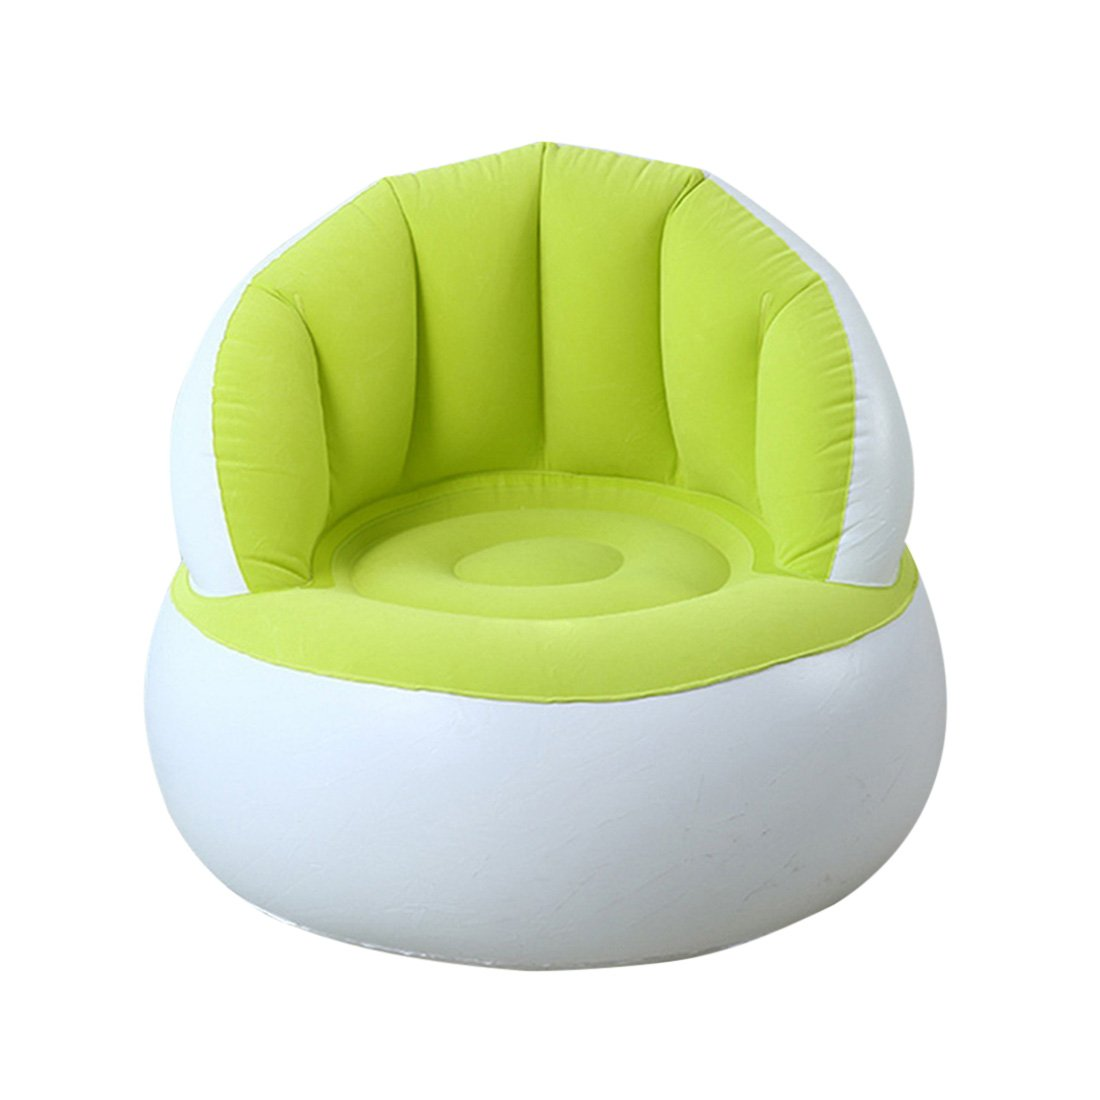 Jiyaru Inflatable Chair Flocking Lounger Sofa Home Seat Kids Bean Bag 58x58x53cm Fluorescent Color